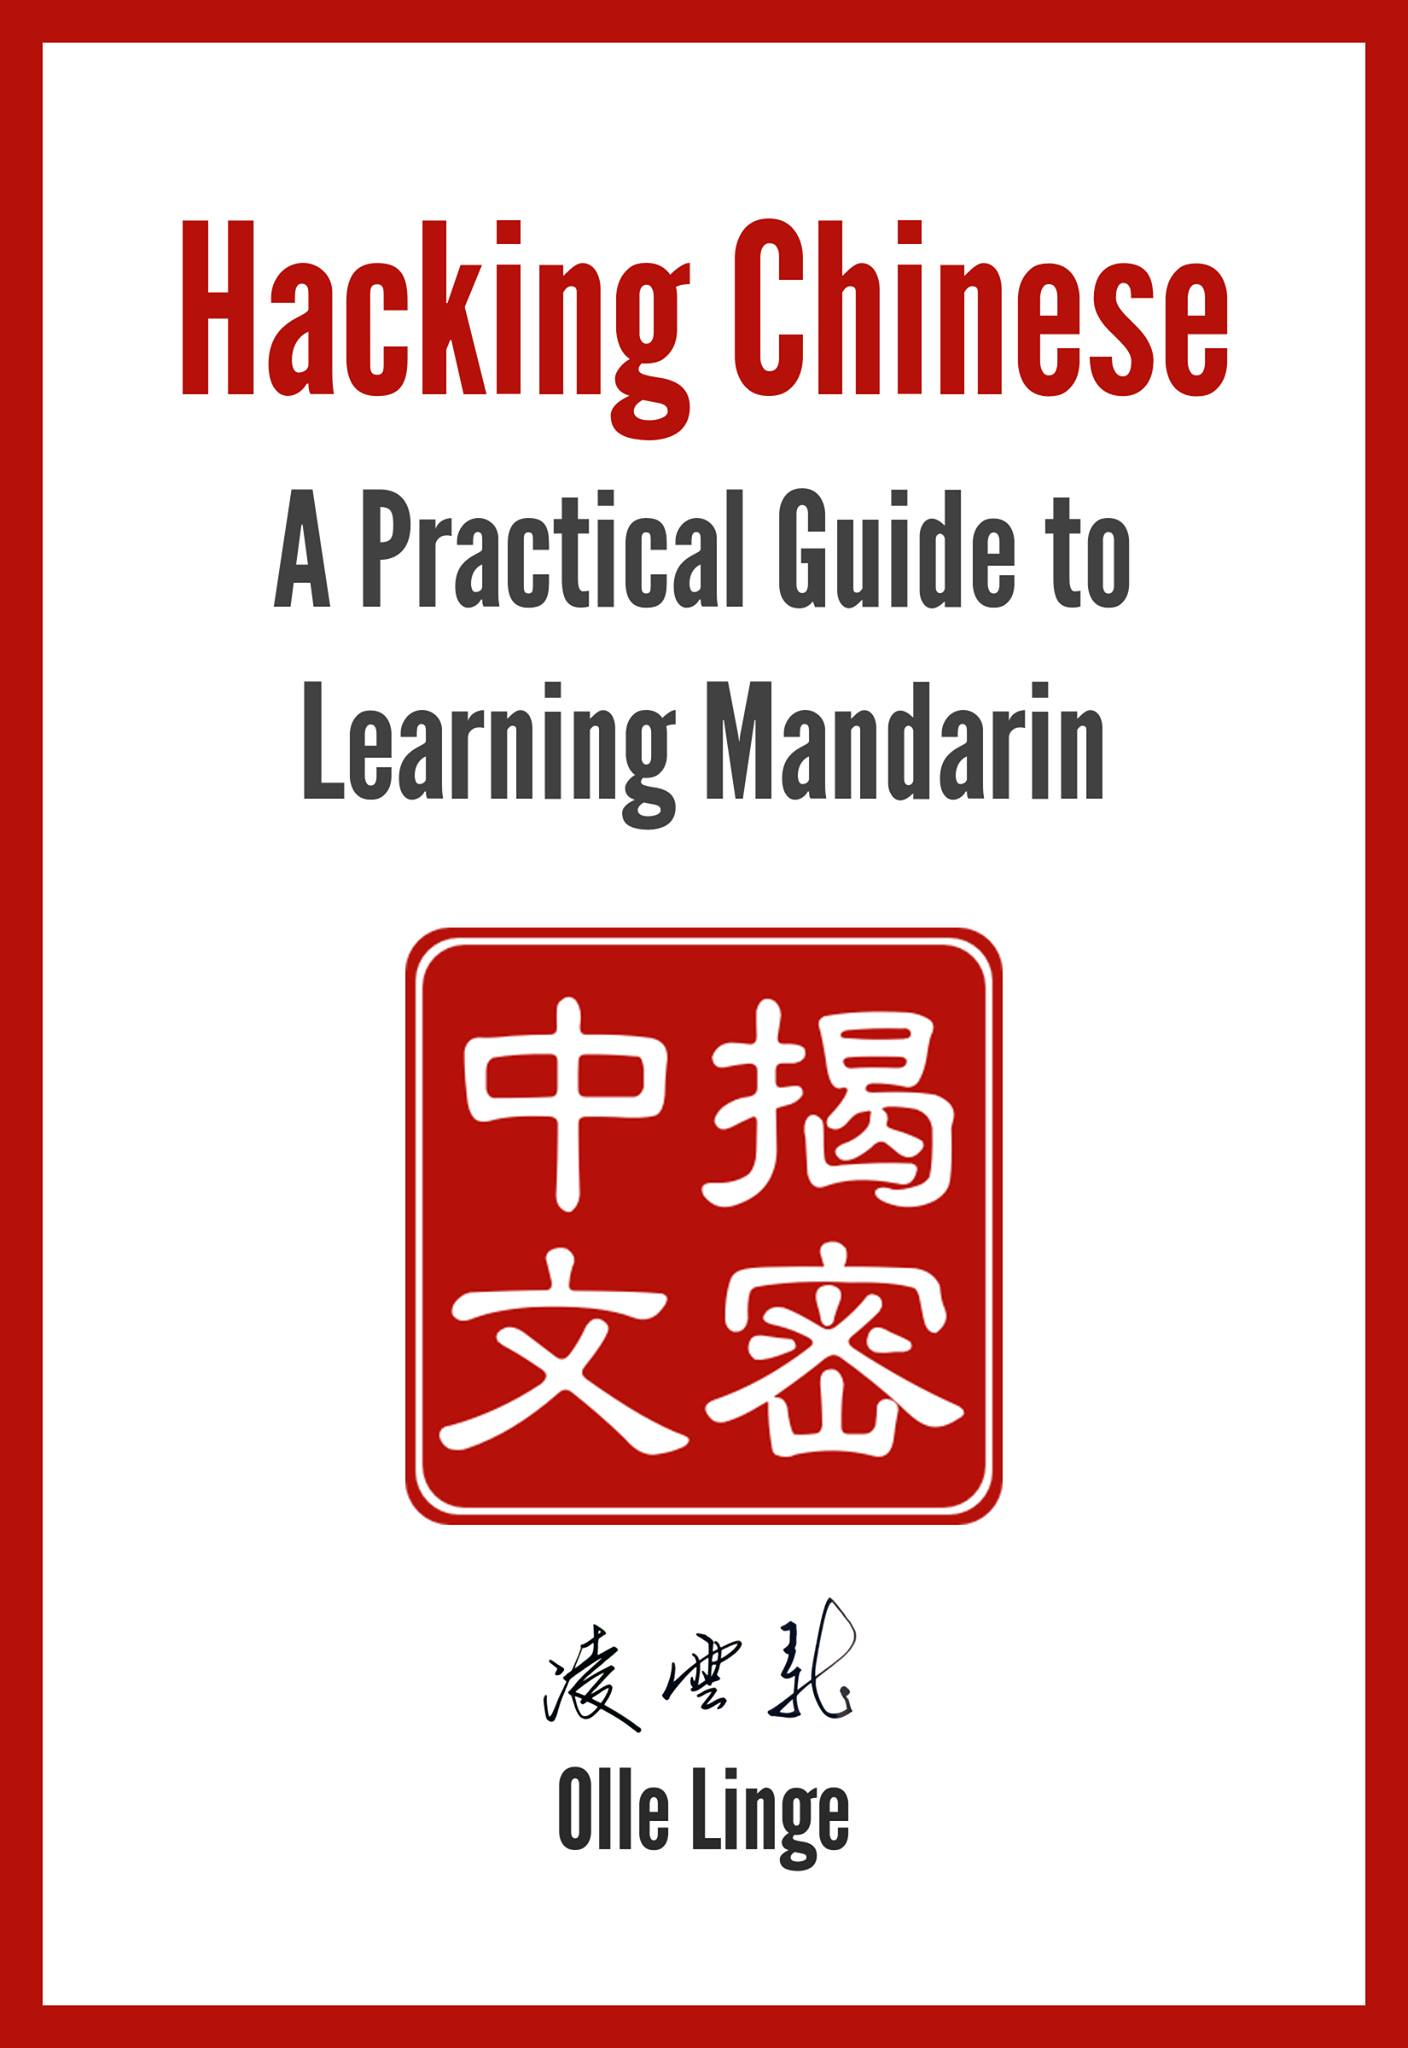 Hacking chinese a practical guide to learning mandarin hacking a practical guide to learning mandarin learning chinese buycottarizona Choice Image